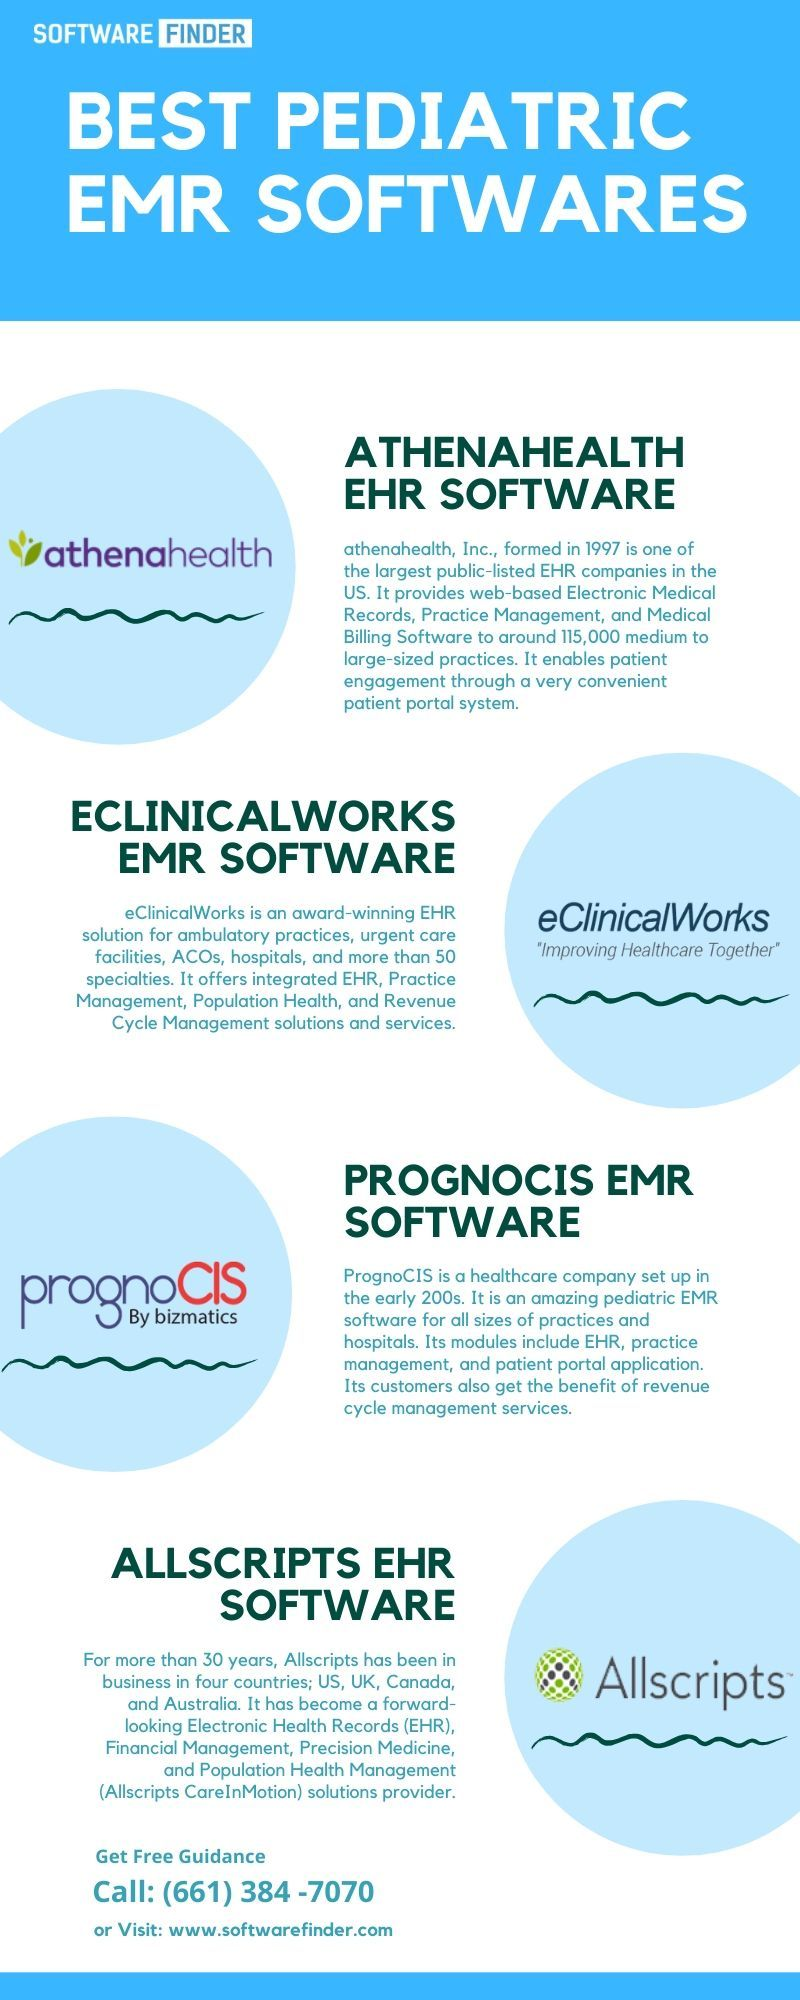 Pin on EHR Softwares